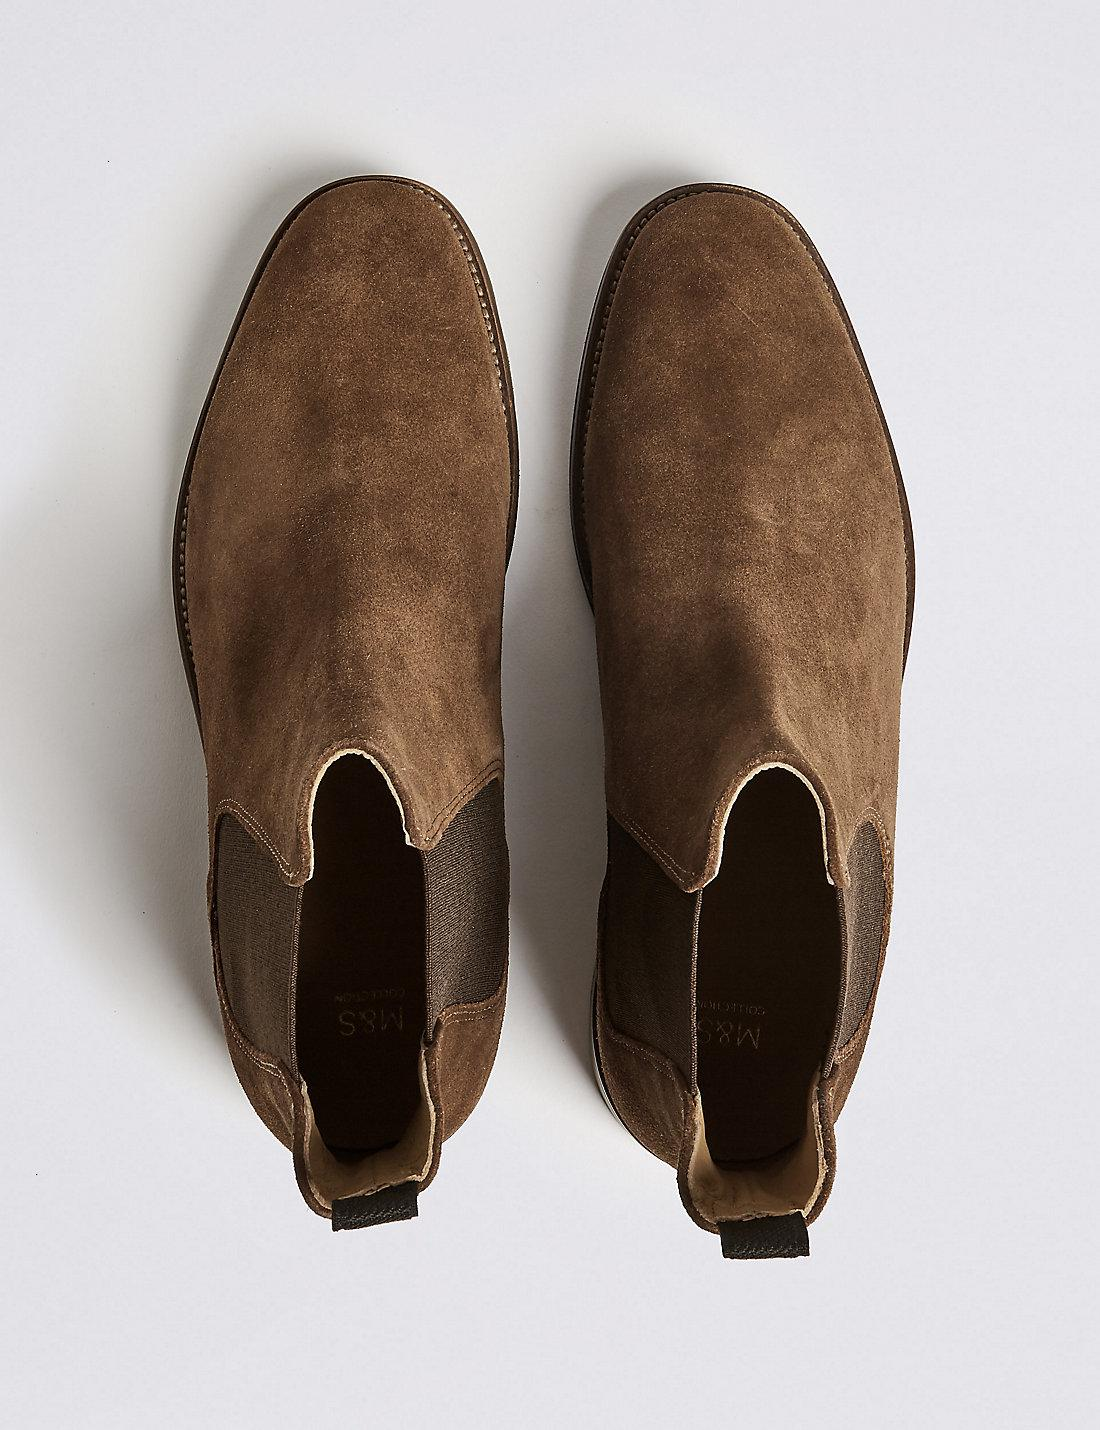 good out x 2018 shoes fantastic savings Marks & Spencer Suede Chelsea Boots in Brown for Men - Lyst